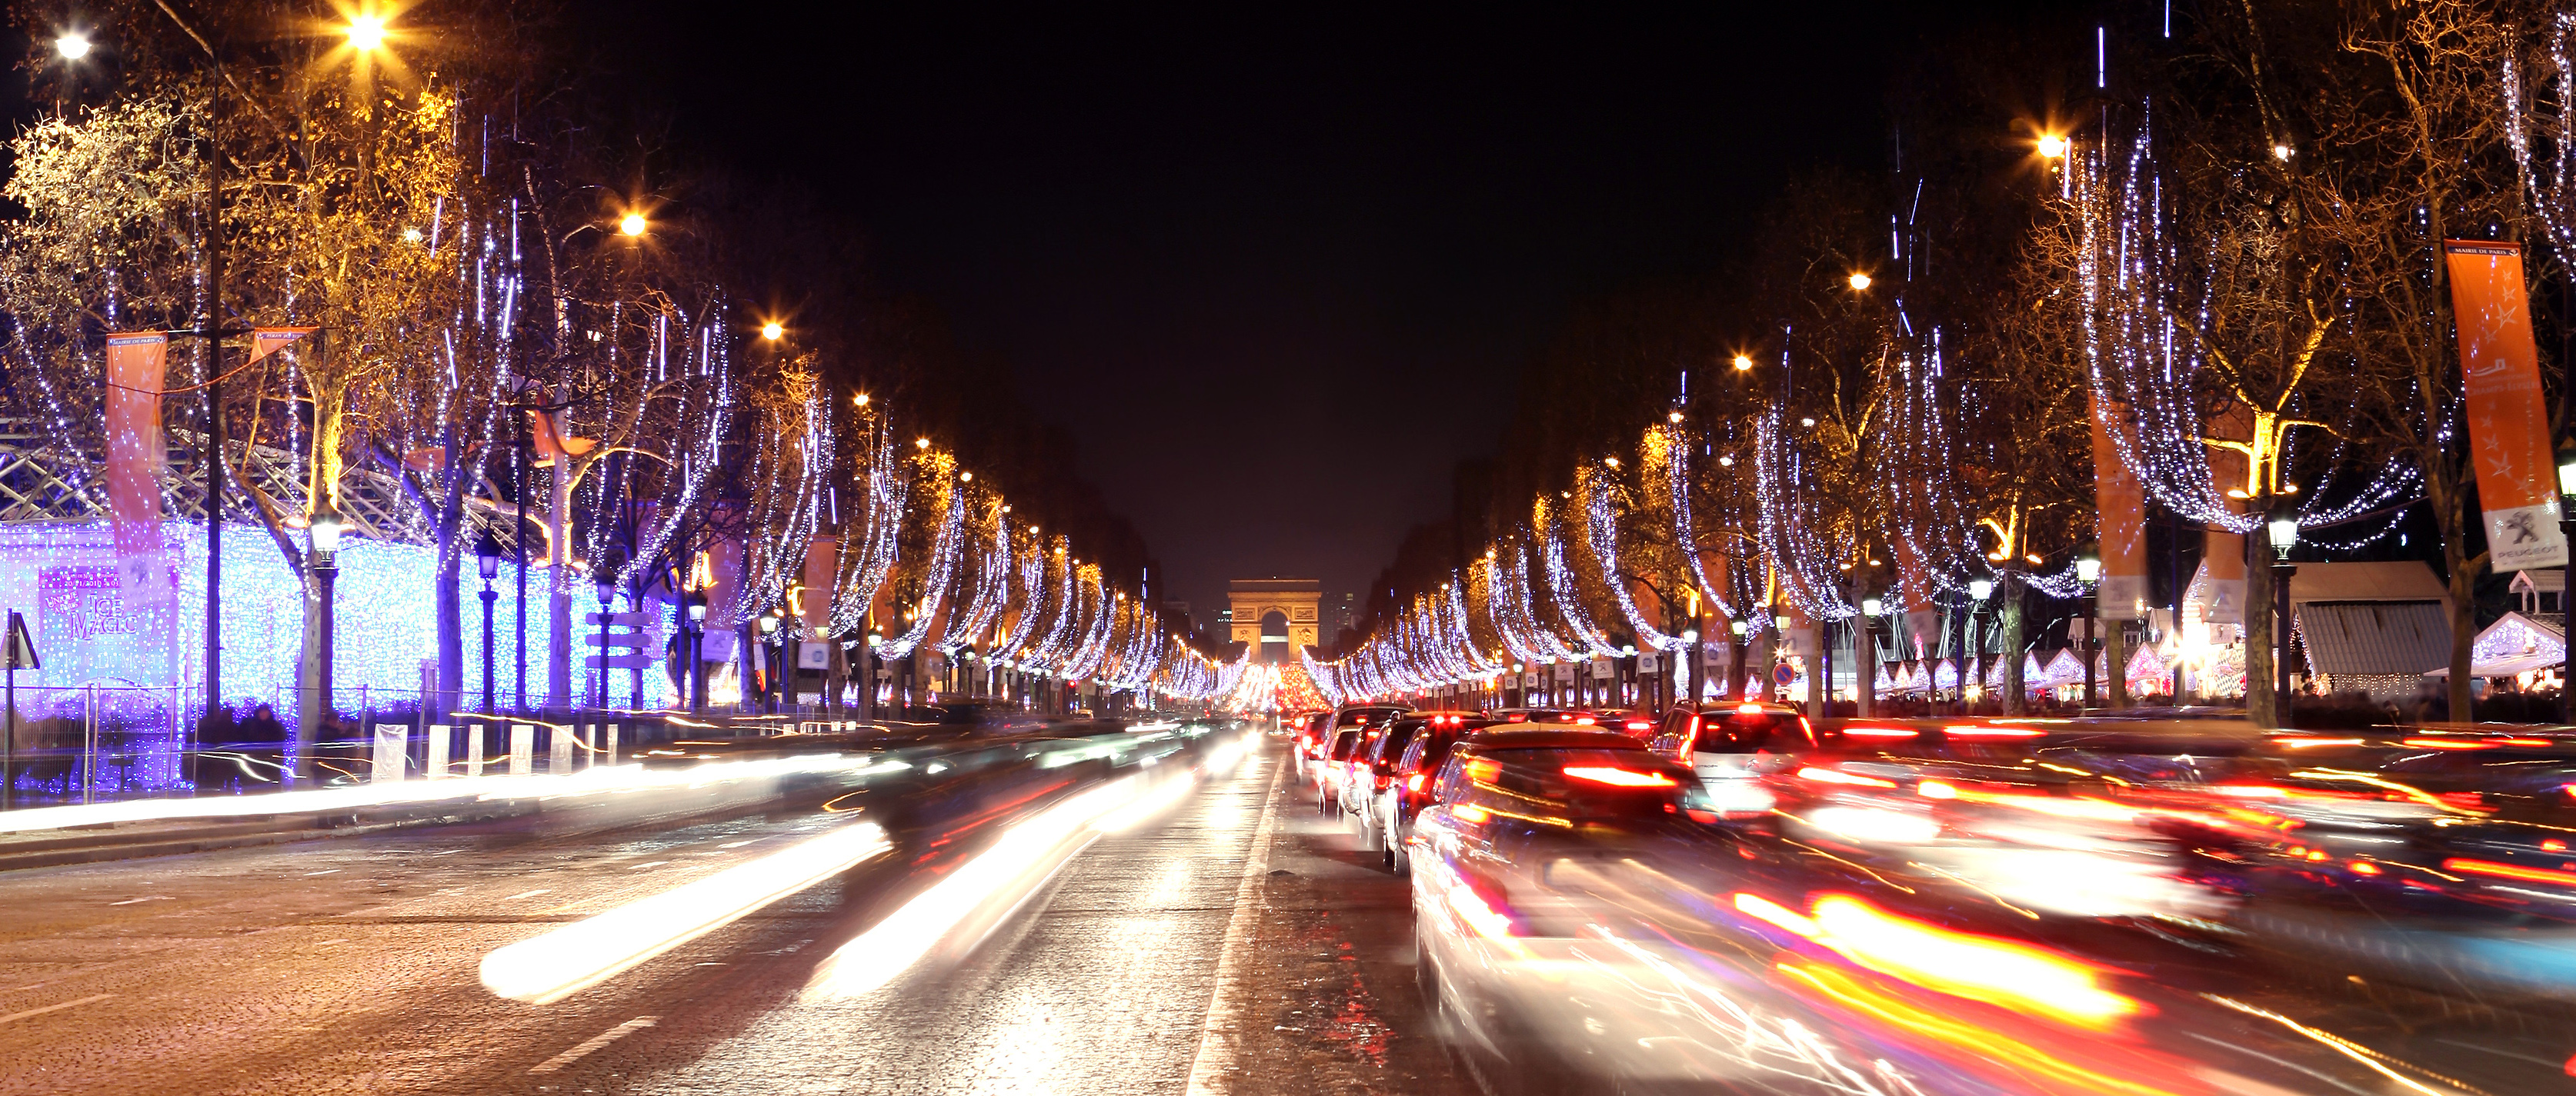 Decoration Noel Champs Elysees